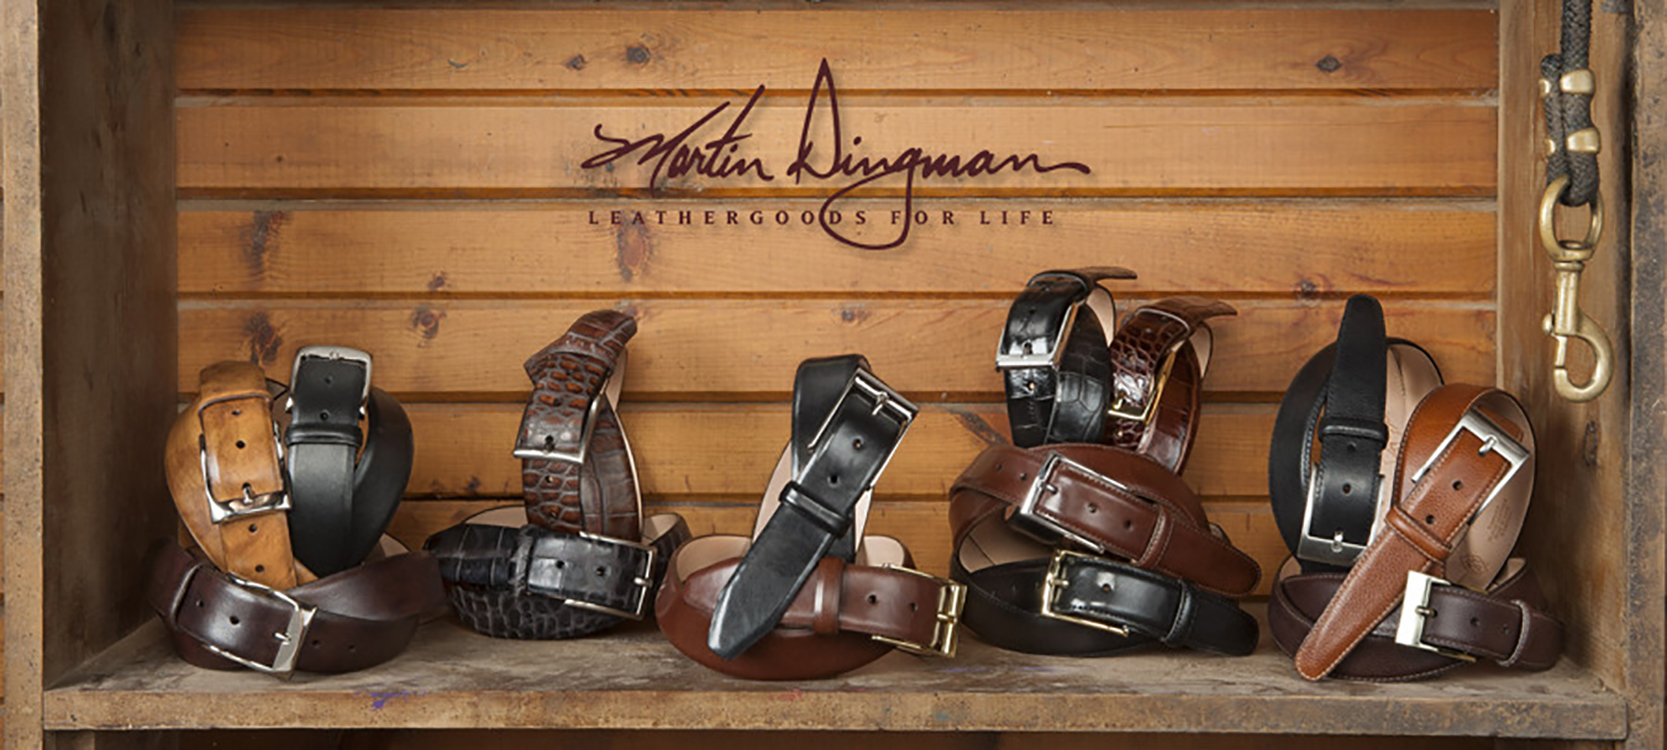 Martin Dingman Dress Belts Billings MT